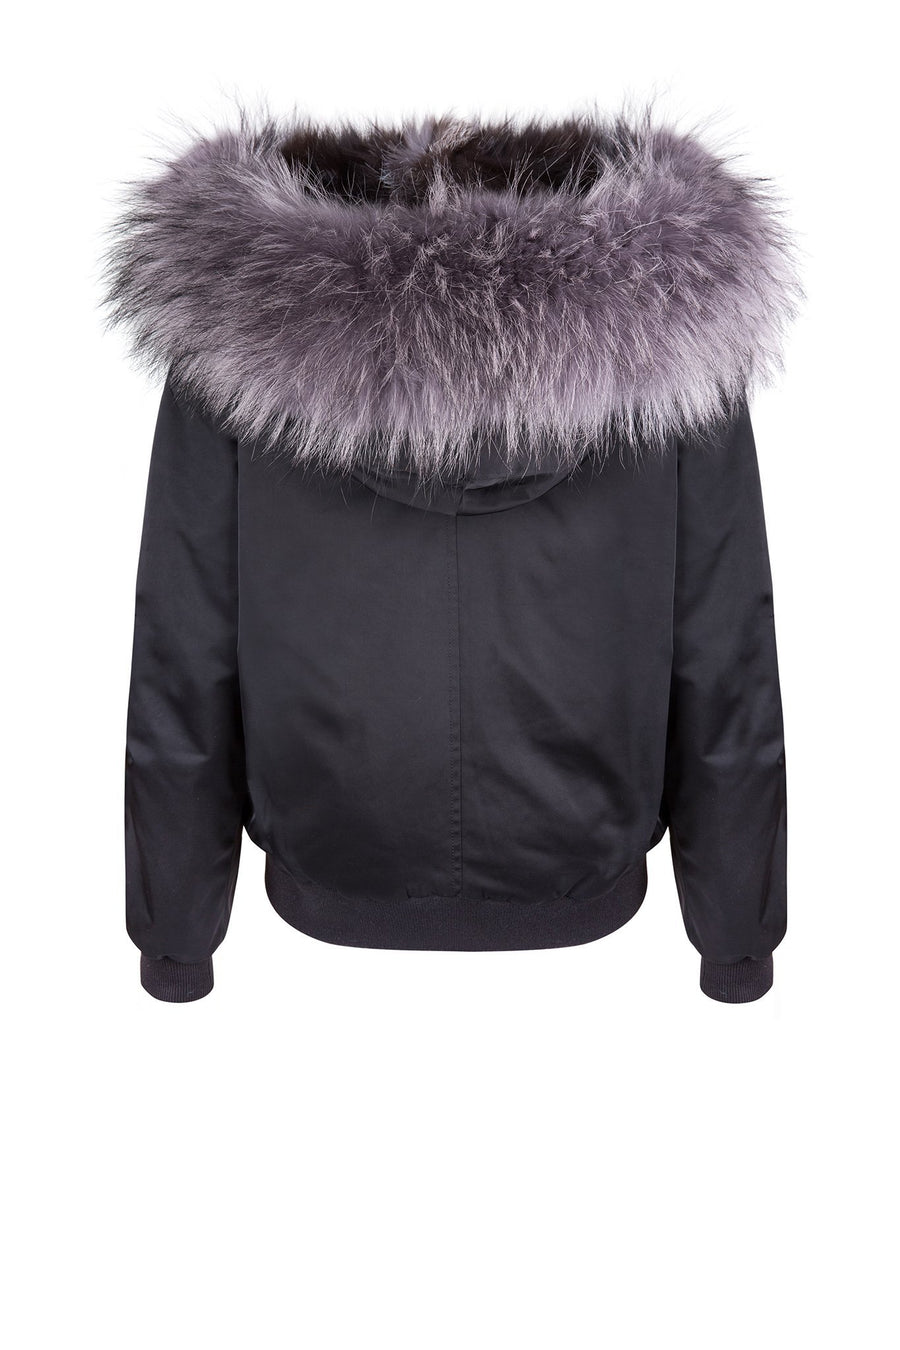 Fur Lined Bomber.